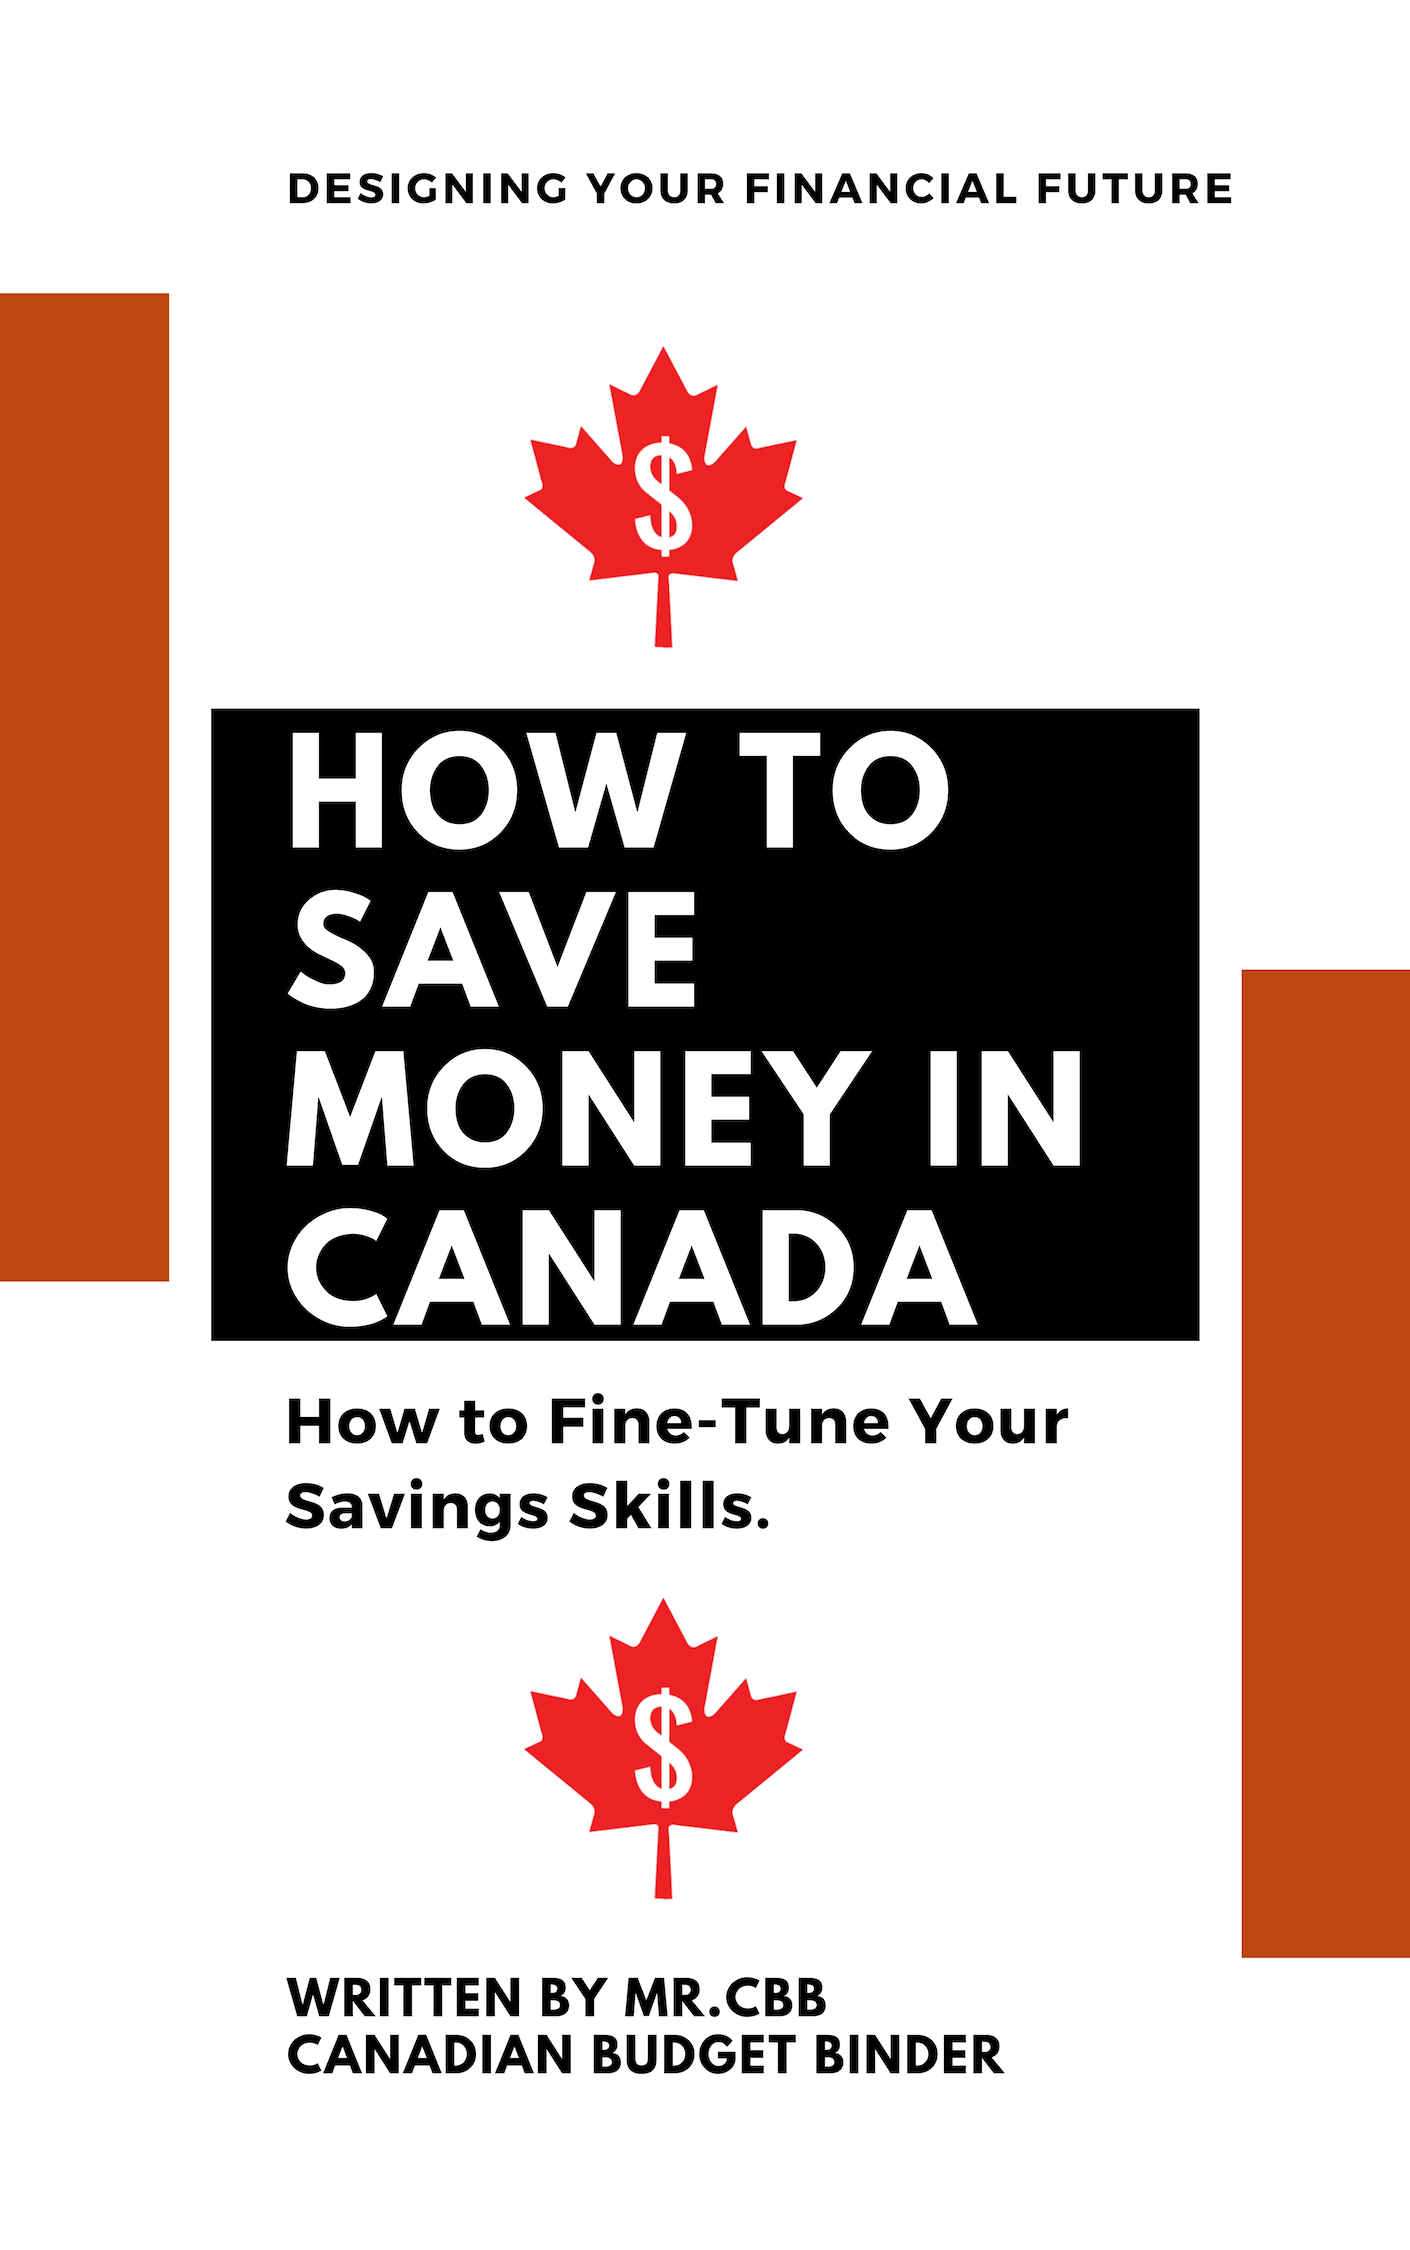 How to Save money In Canada post logo